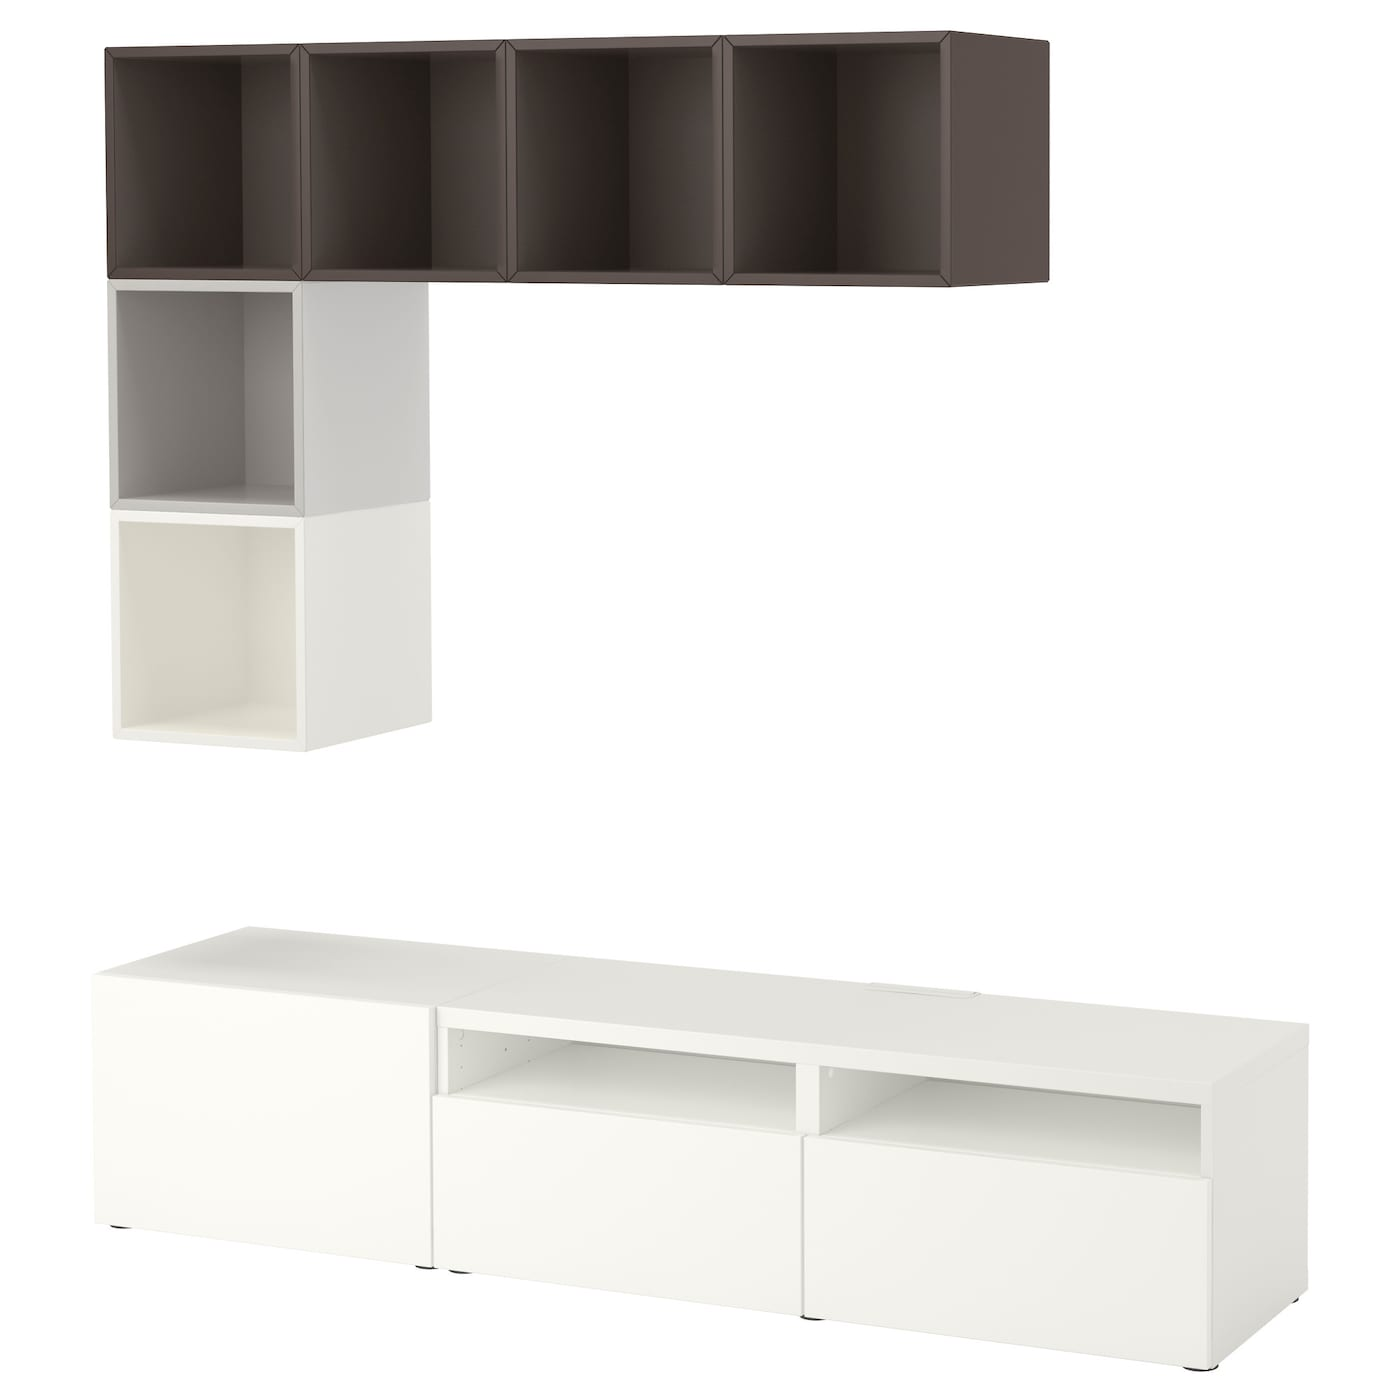 IKEA EKET/BESTÅ cabinet combination for TV Large drawers make it easy to keep your things organised.